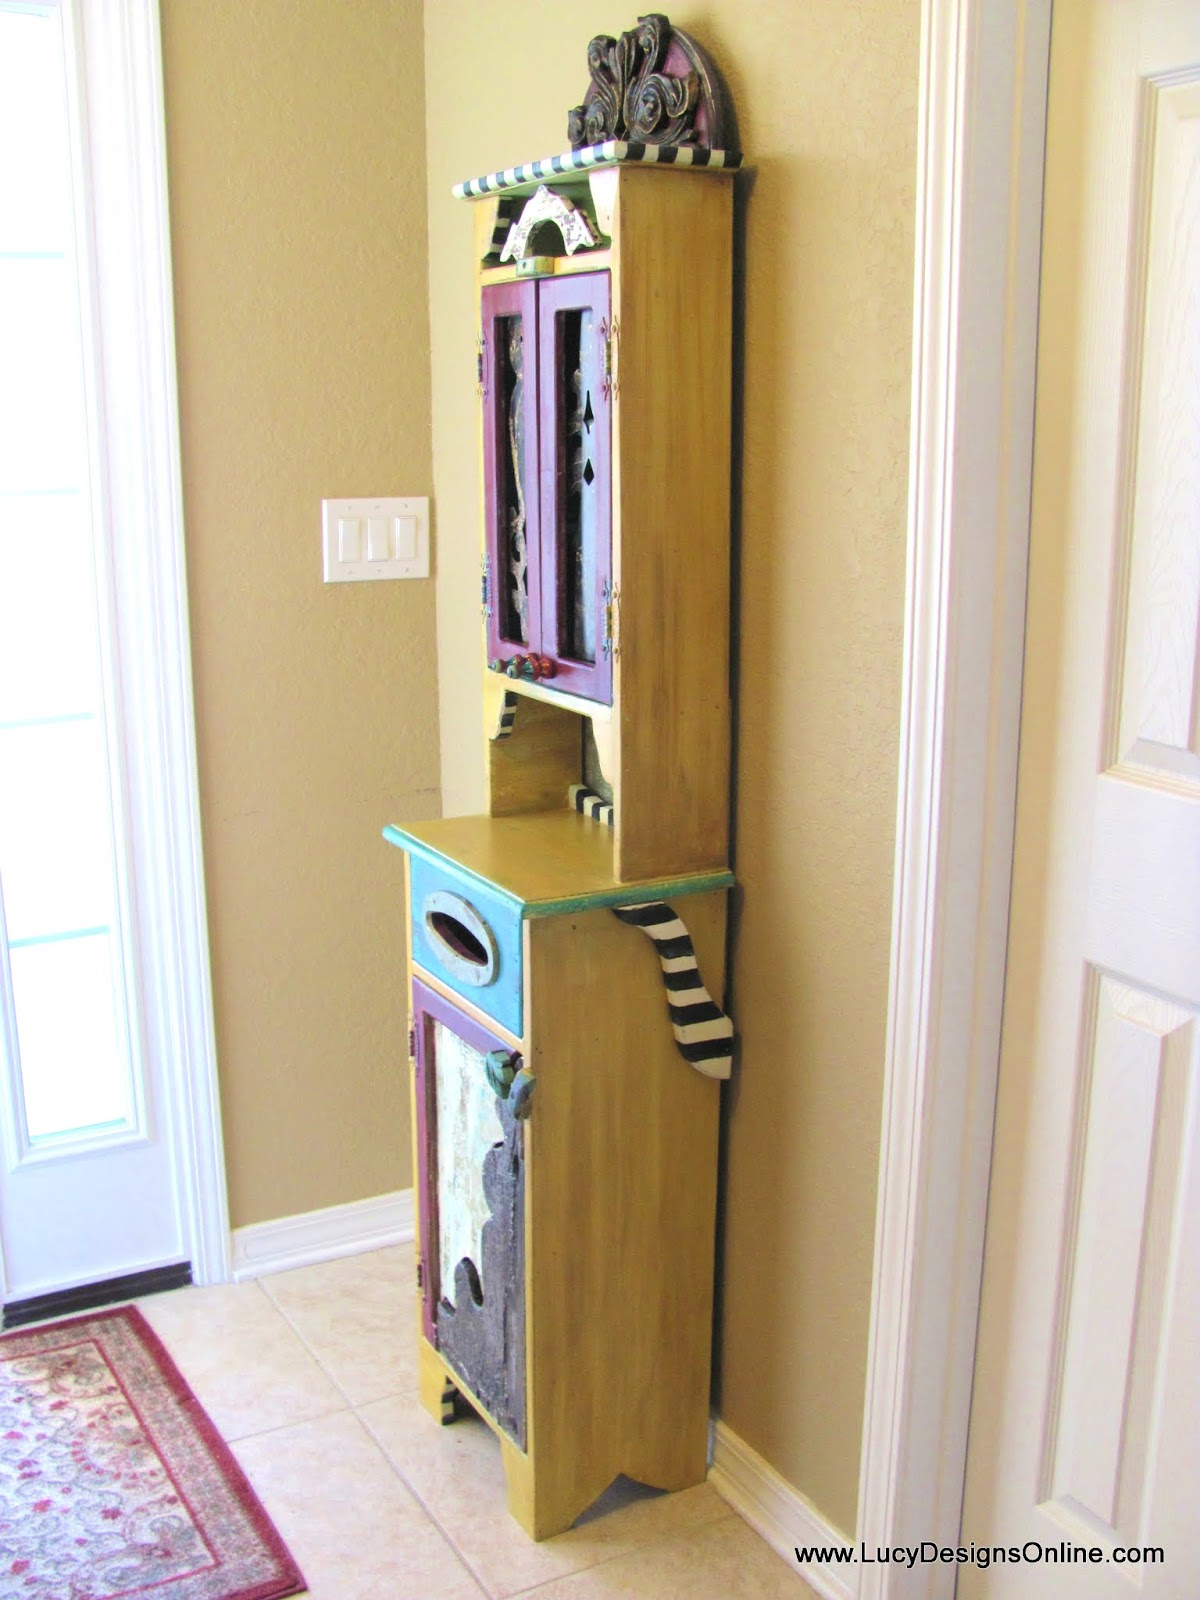 hand painted funky cabinet makeover, whimsical, colorful, recycled